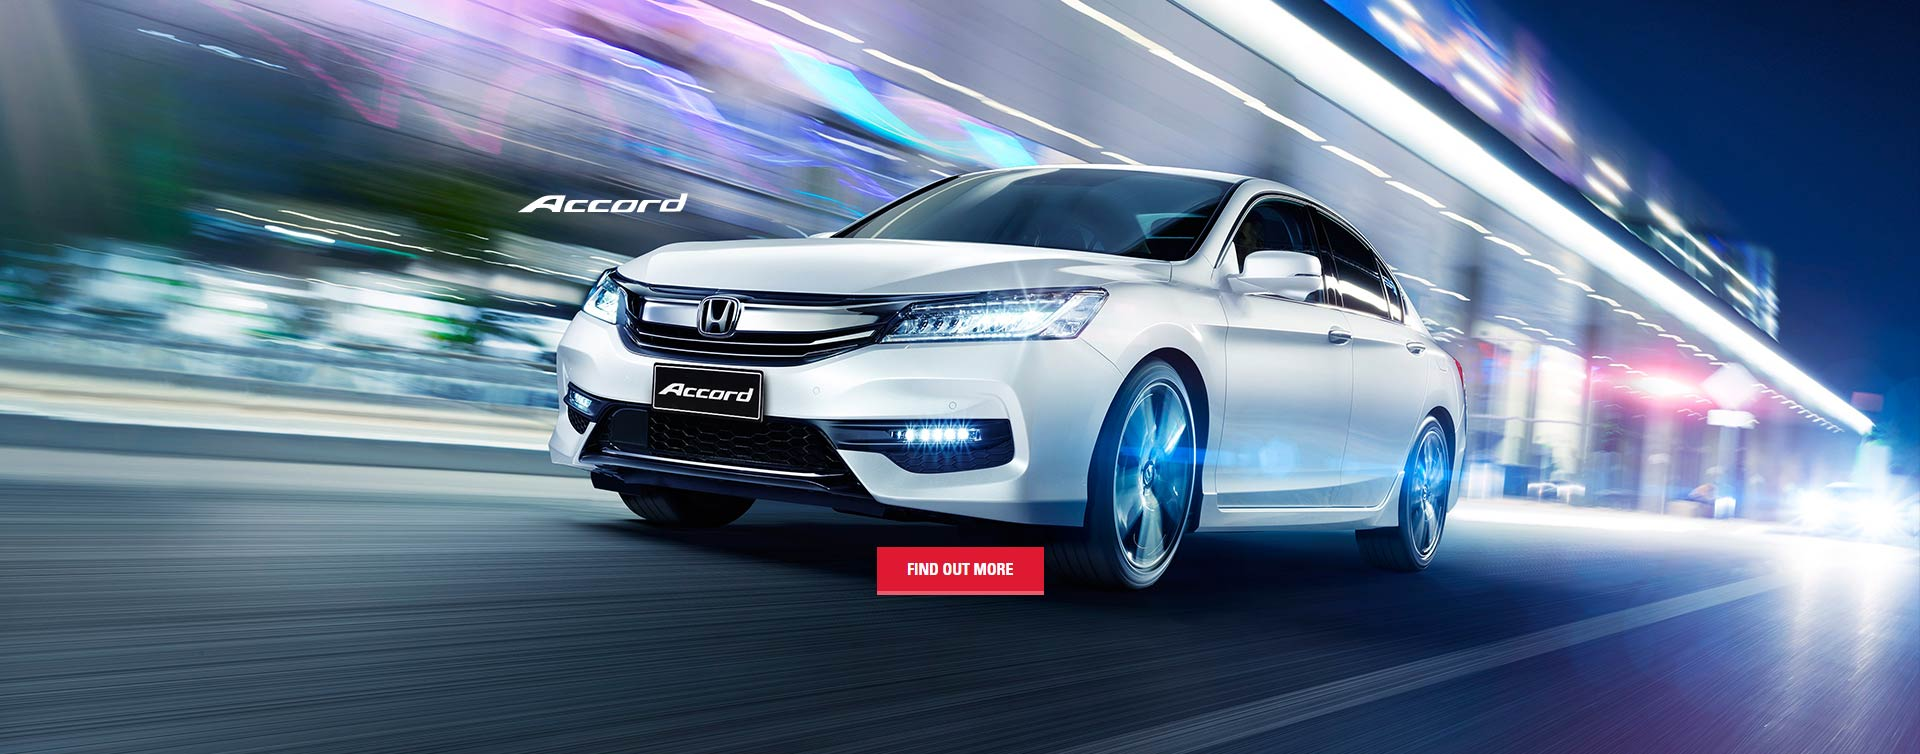 Find out more about the stylish Honda Accord sedan at Northside Honda Brisbane.